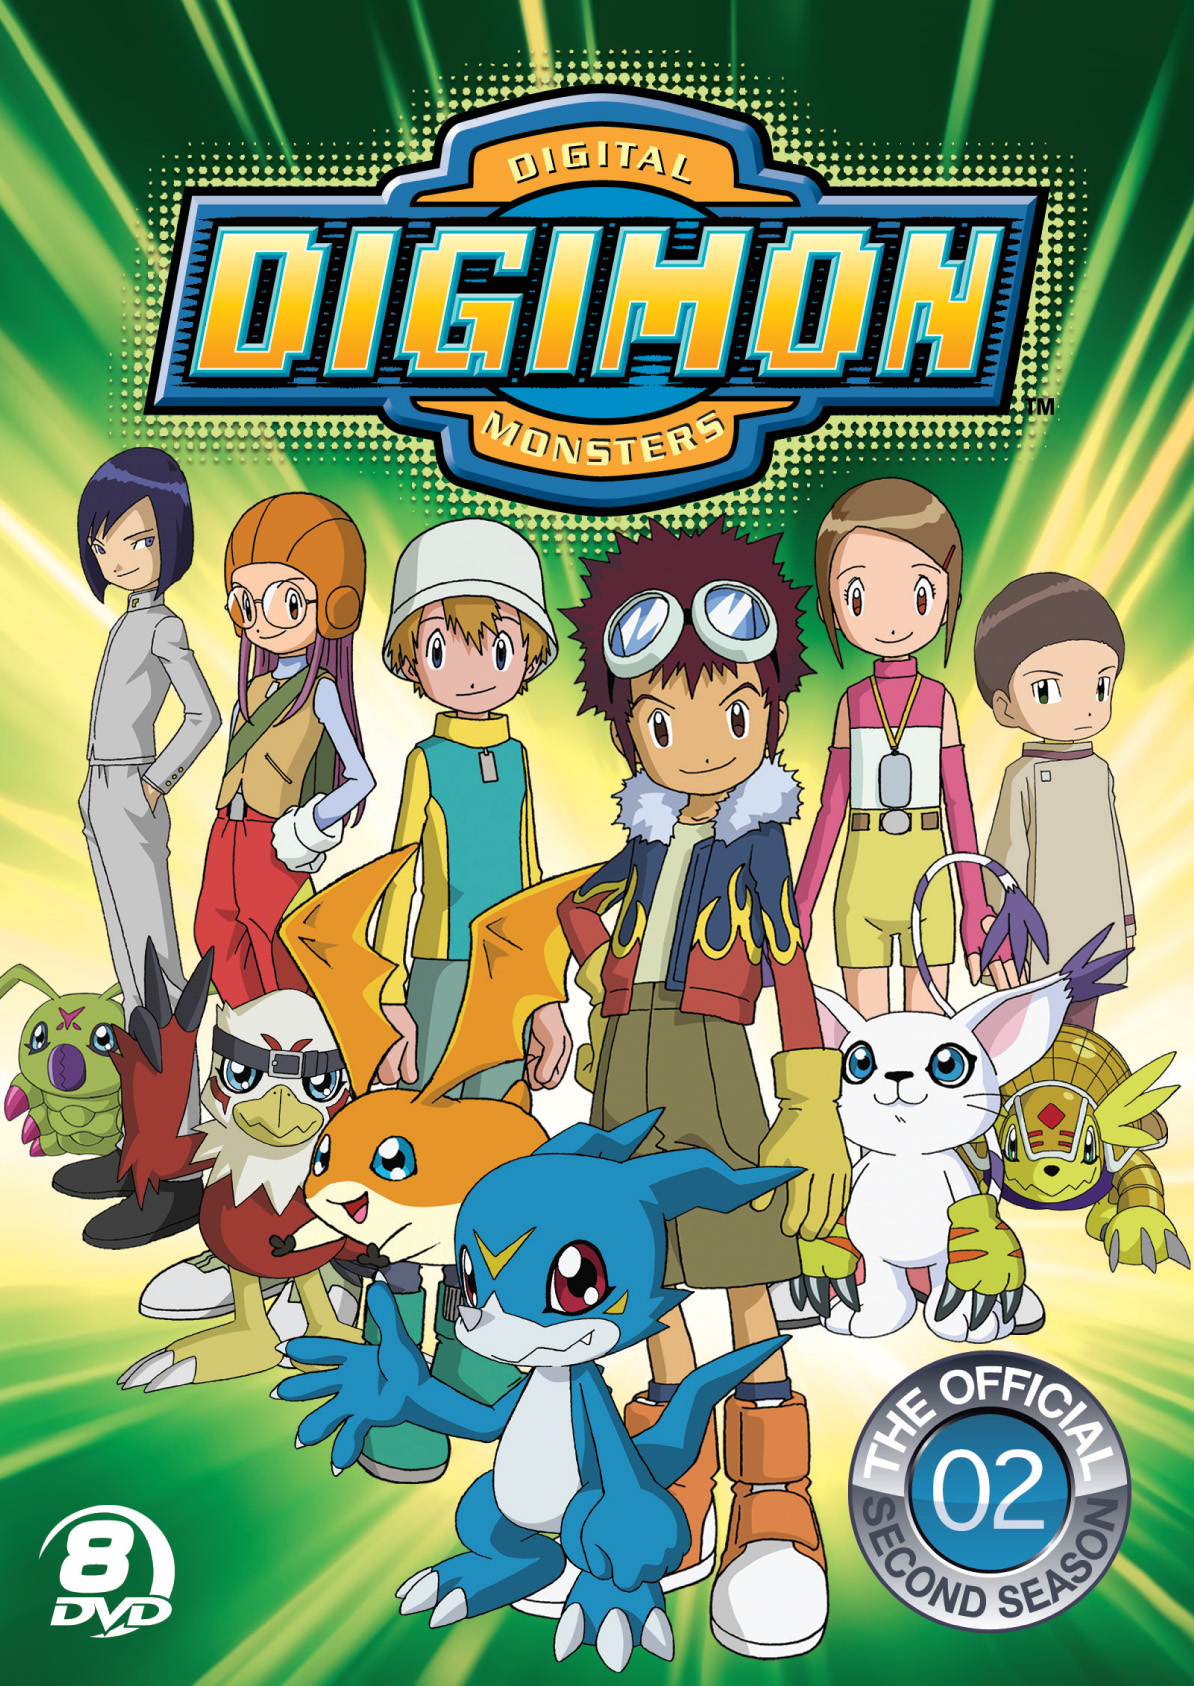 Digimonadventure02